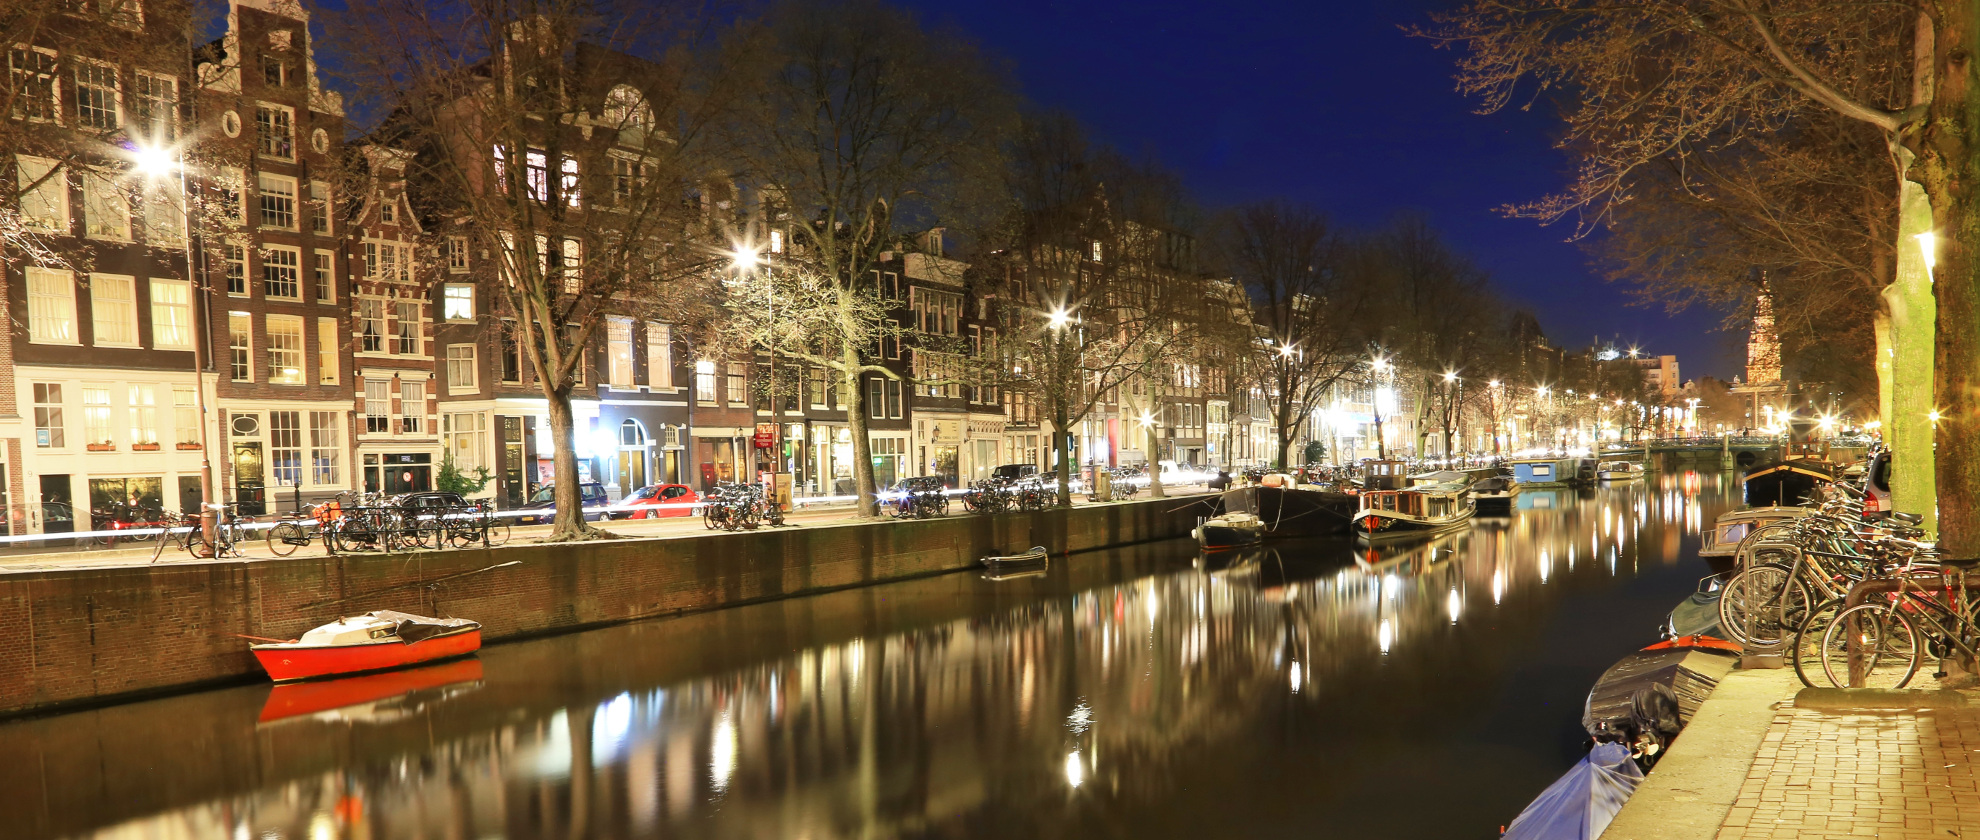 Travel Bucketlist: Amsterdam